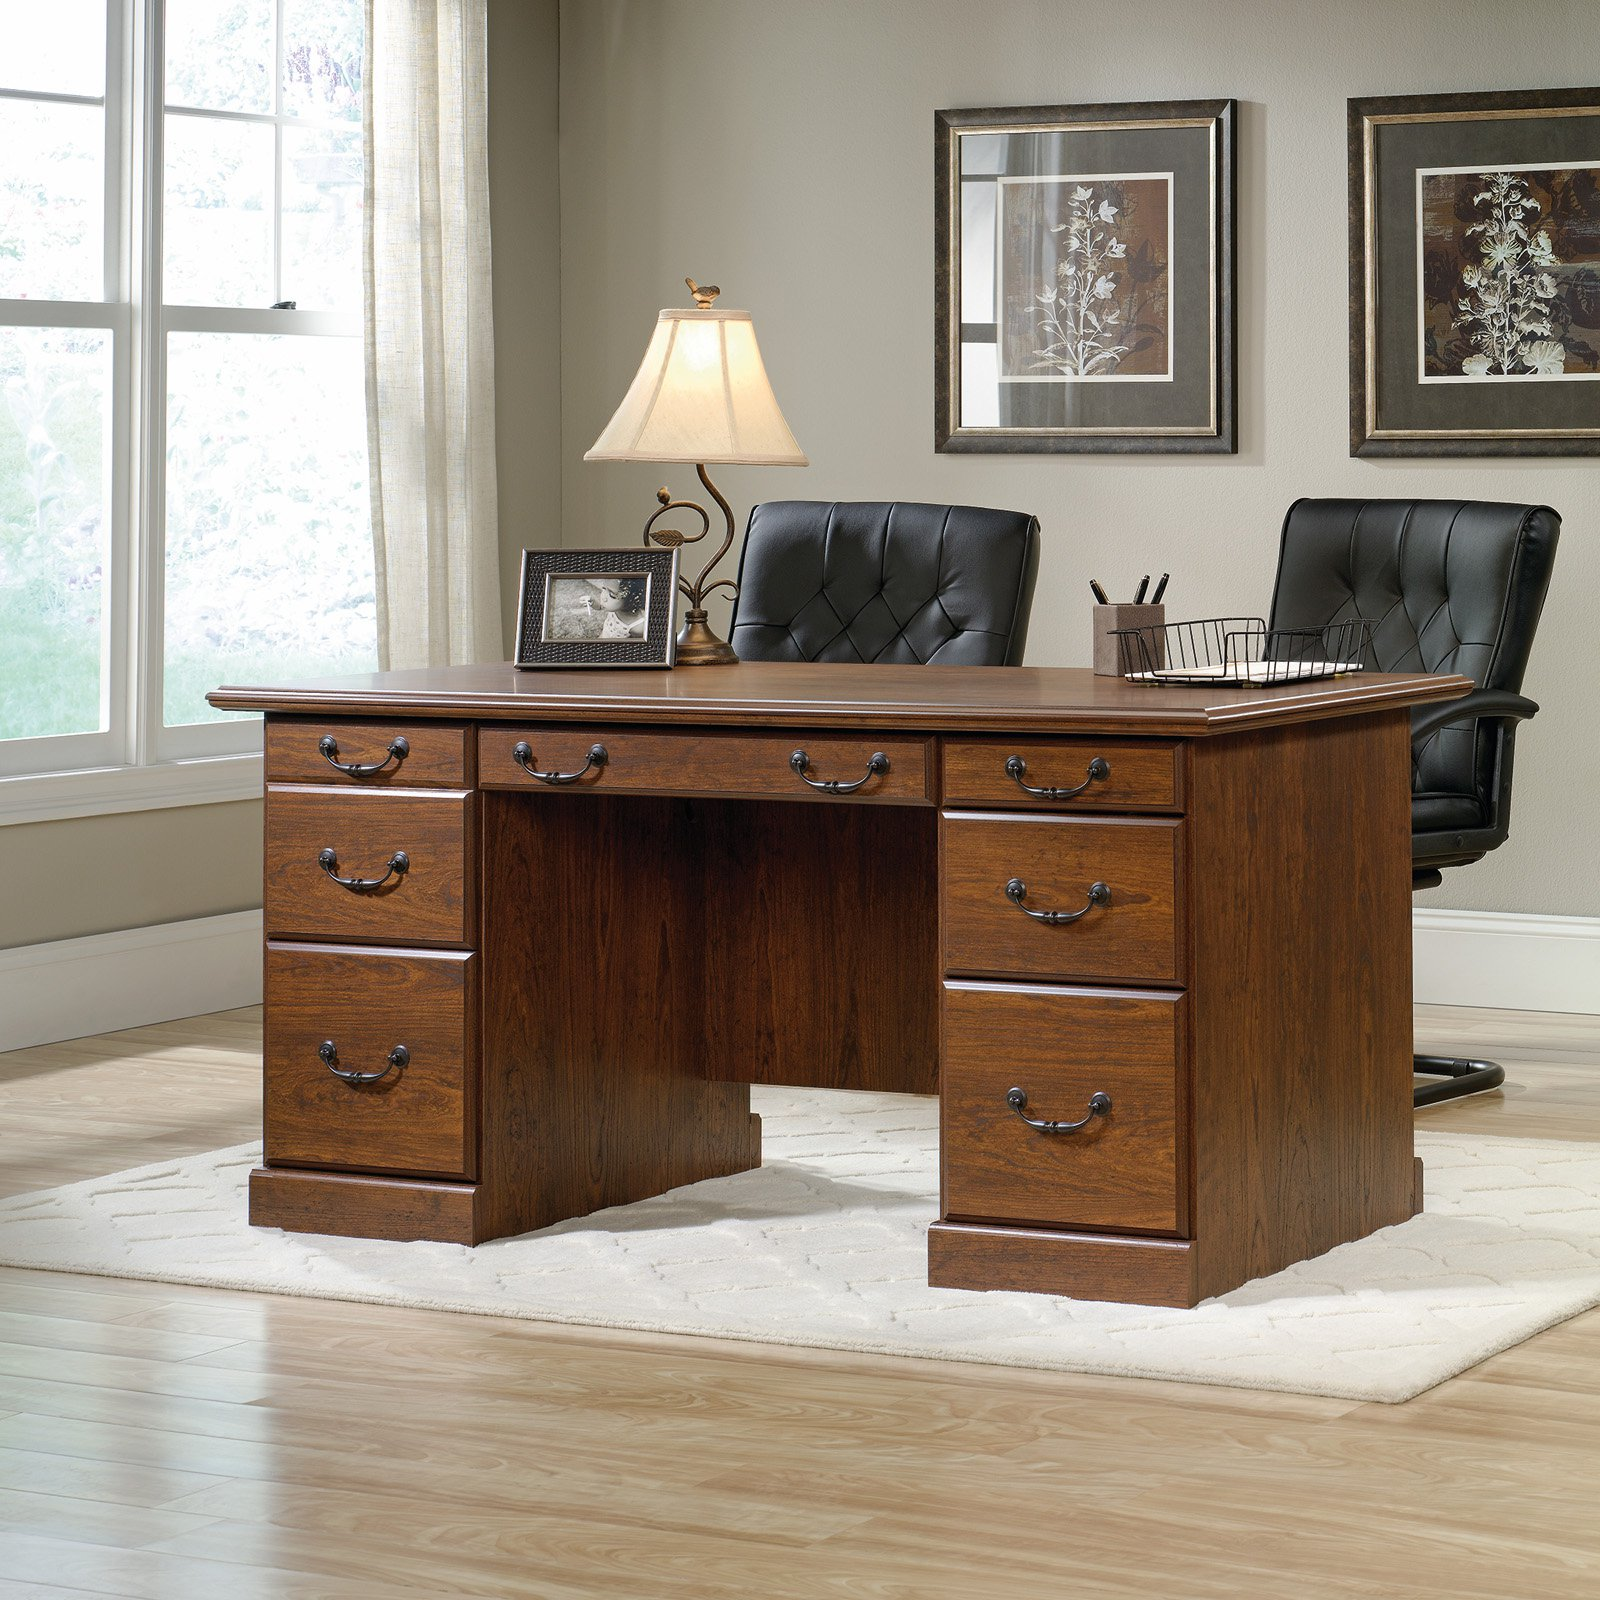 sauder orchard hills executive desk milled cherry end table long console with shelves slim tables target whalen llc range cookers aluminum nic modern industrial coffee luxury pet